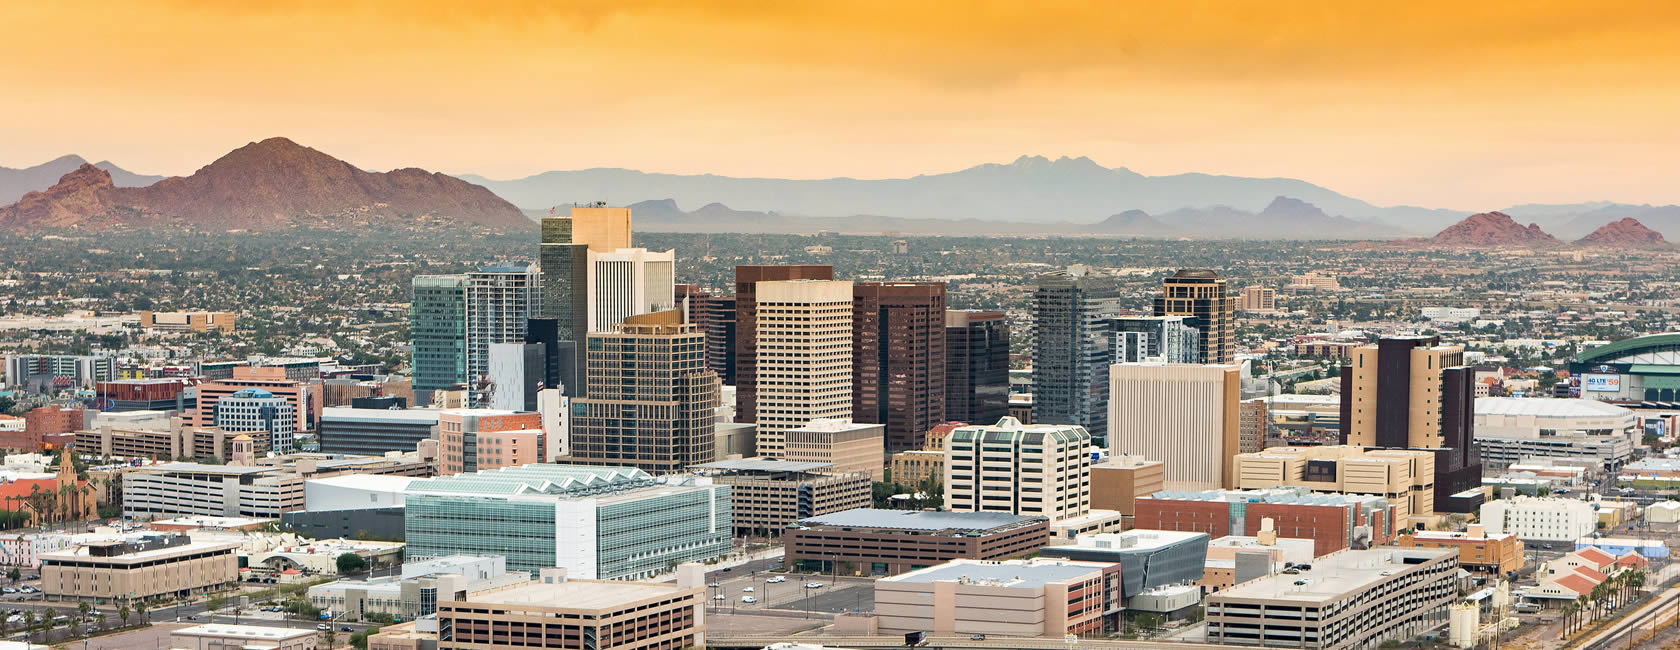 Neurosurgeons in Phoenix Arizona